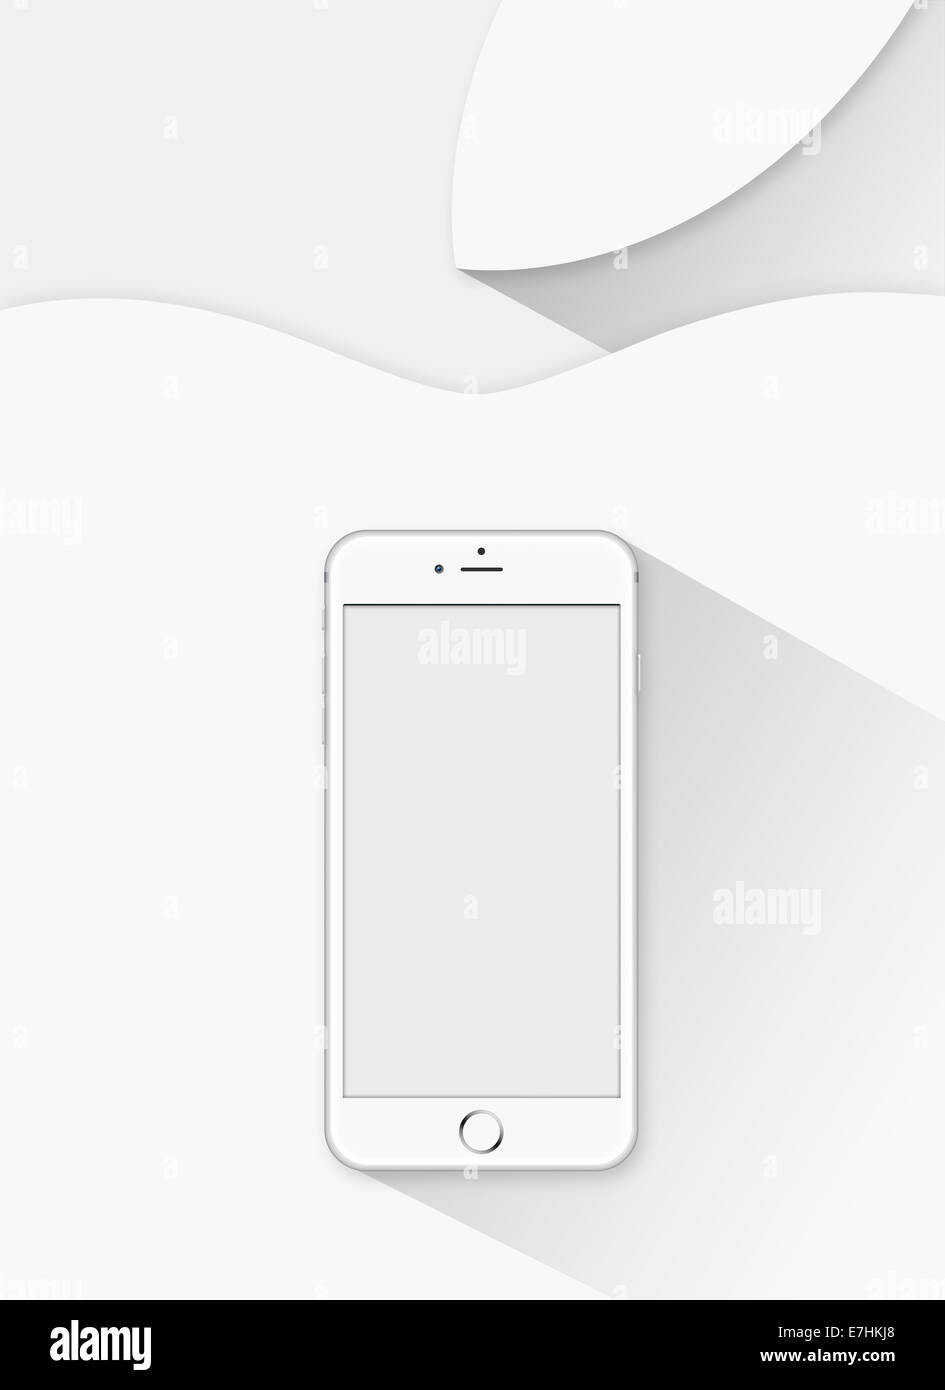 Digitally generated image of cell phone, iphone 6 and apple background. - Stock Image